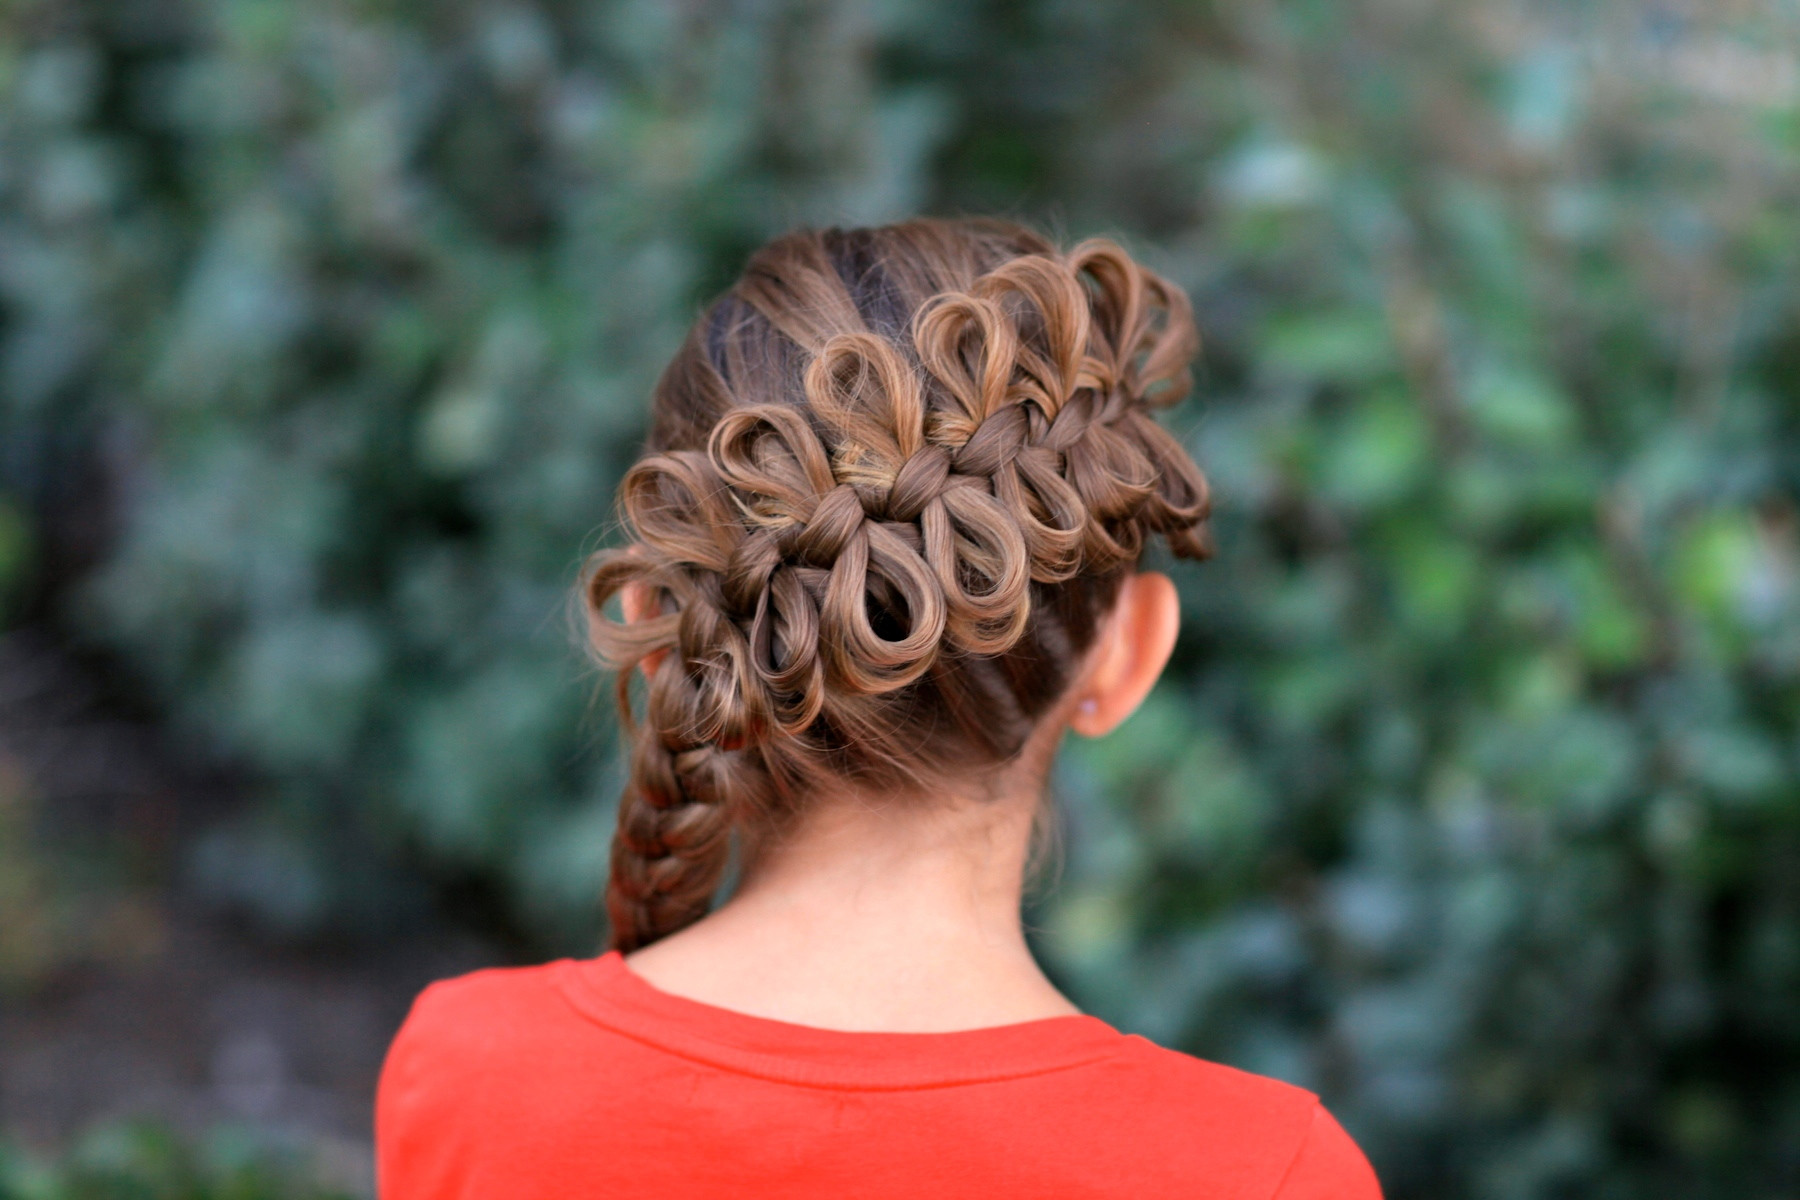 Best ideas about Cute Girls Haircuts . Save or Pin Diagonal Bow Braid Popular Hairstyles Now.